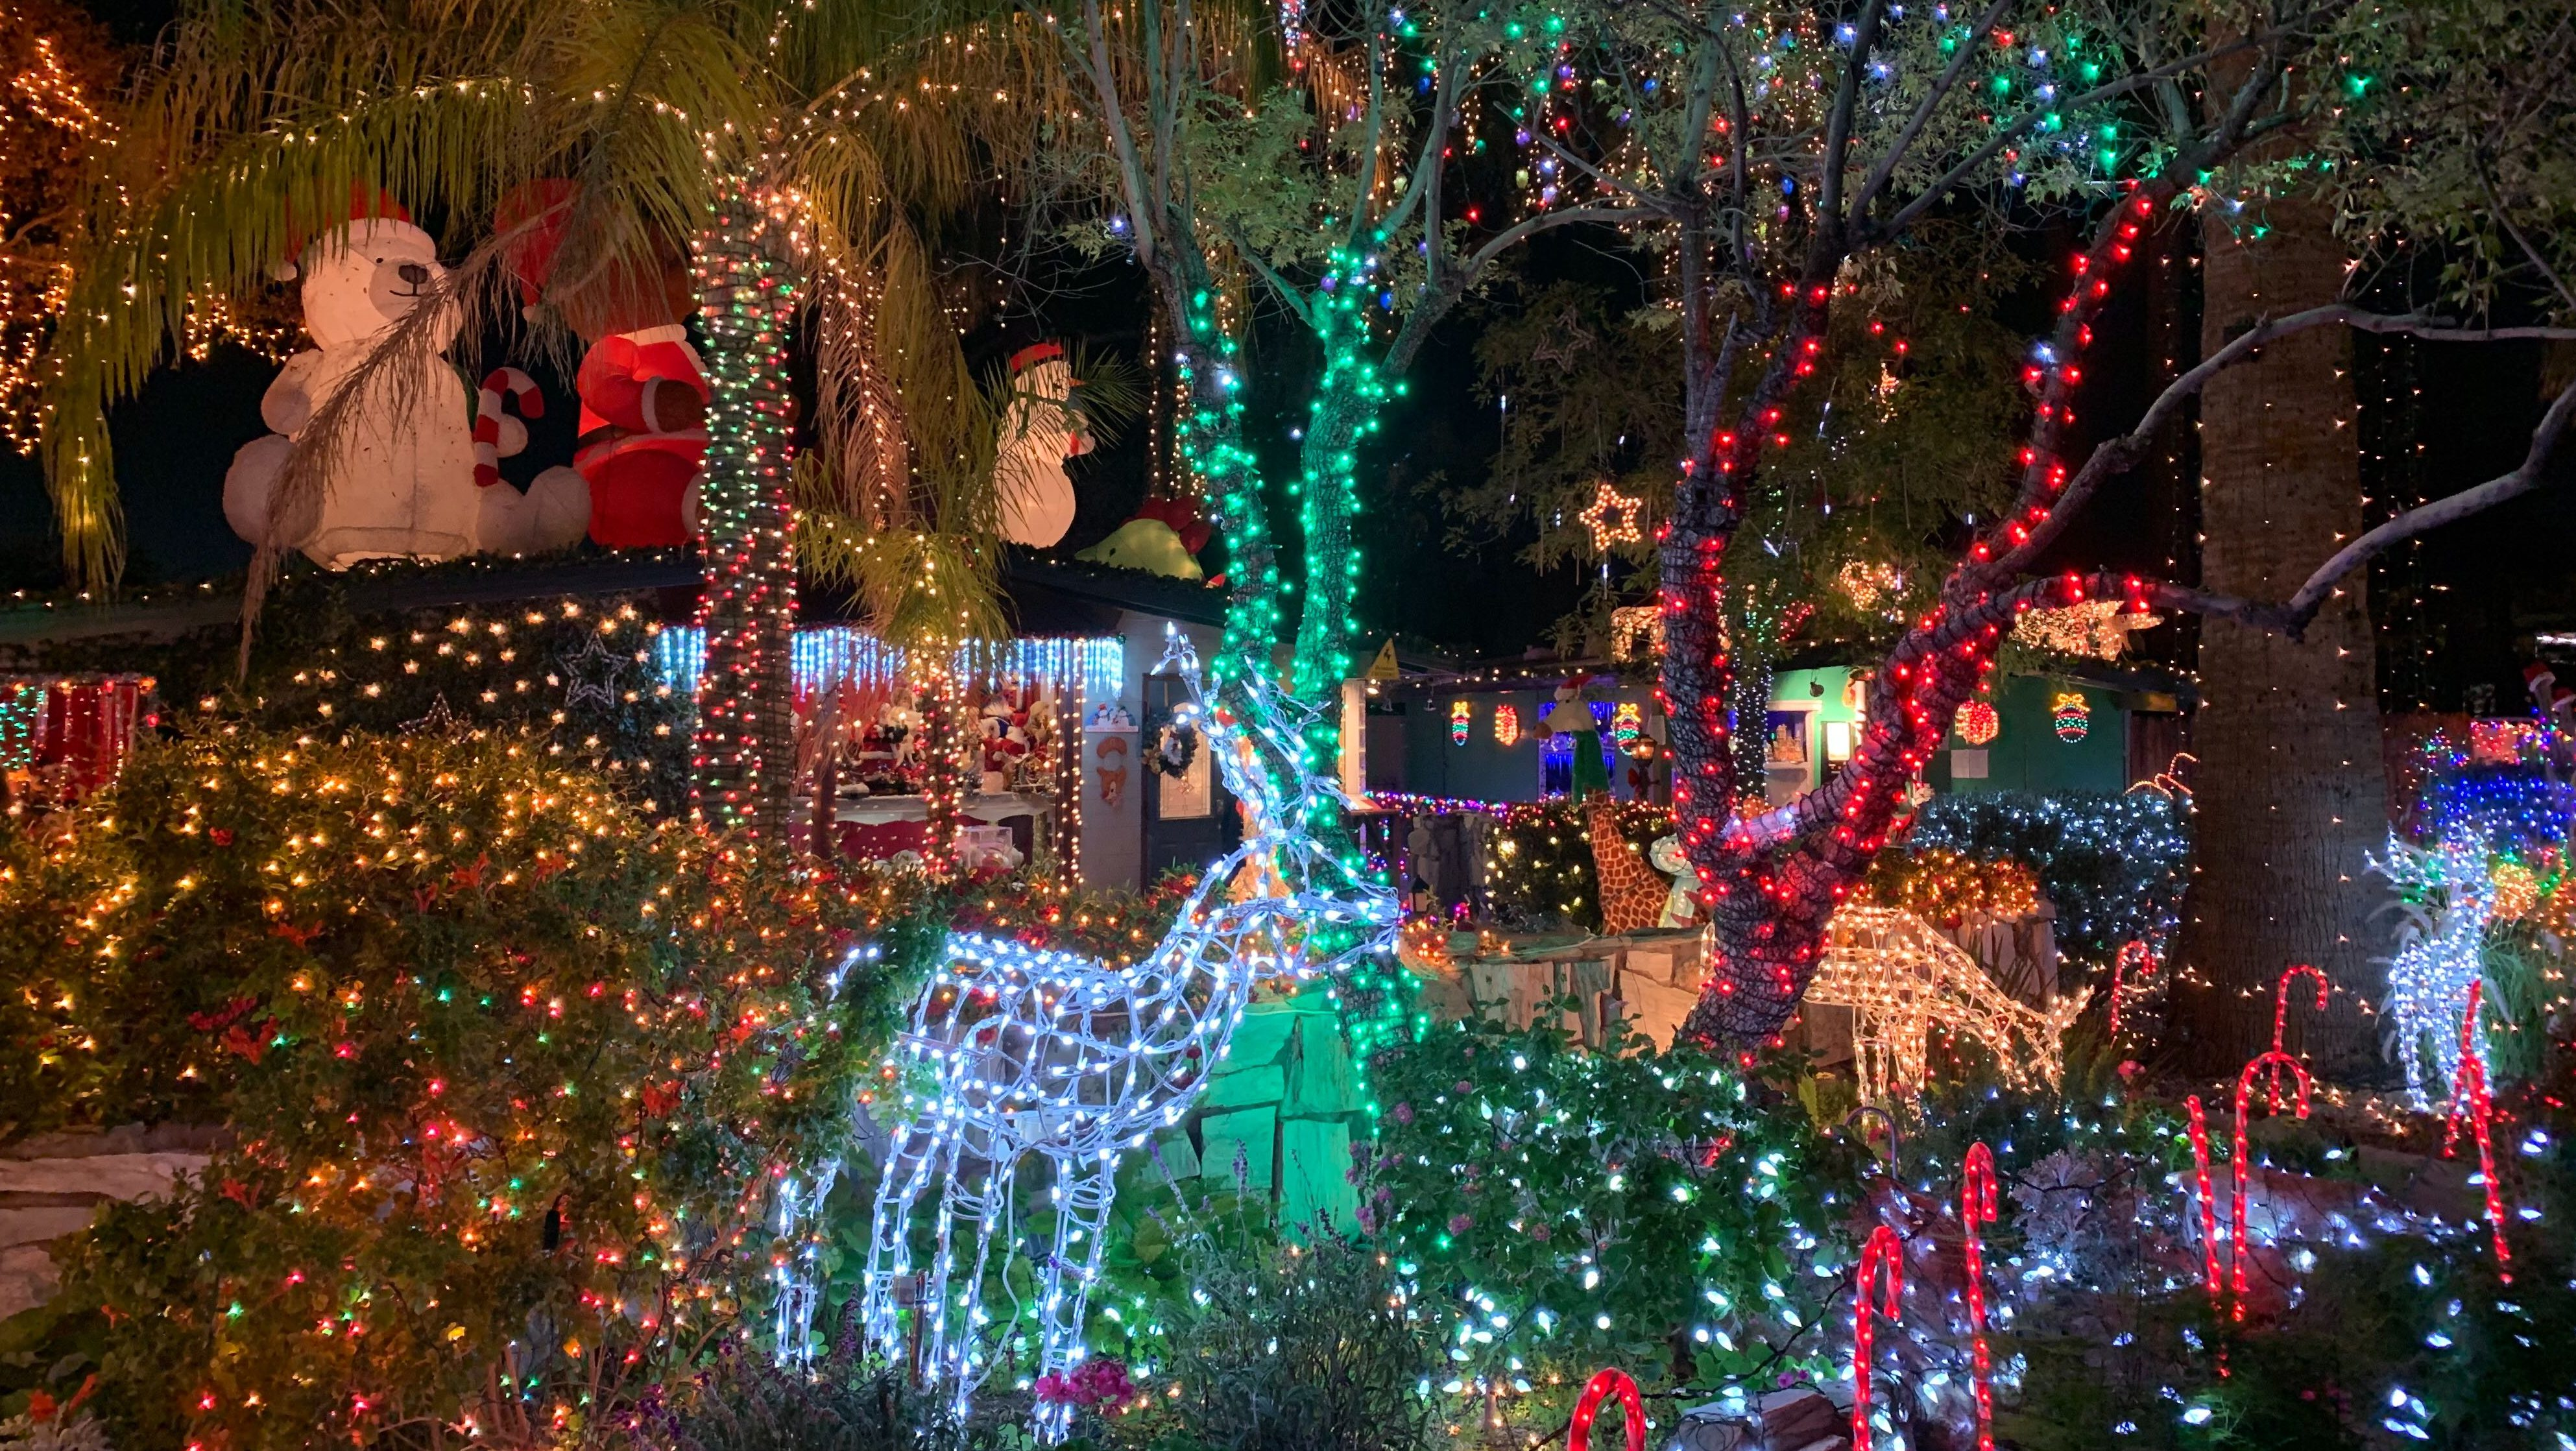 Best Christmas Light Displays For 2019